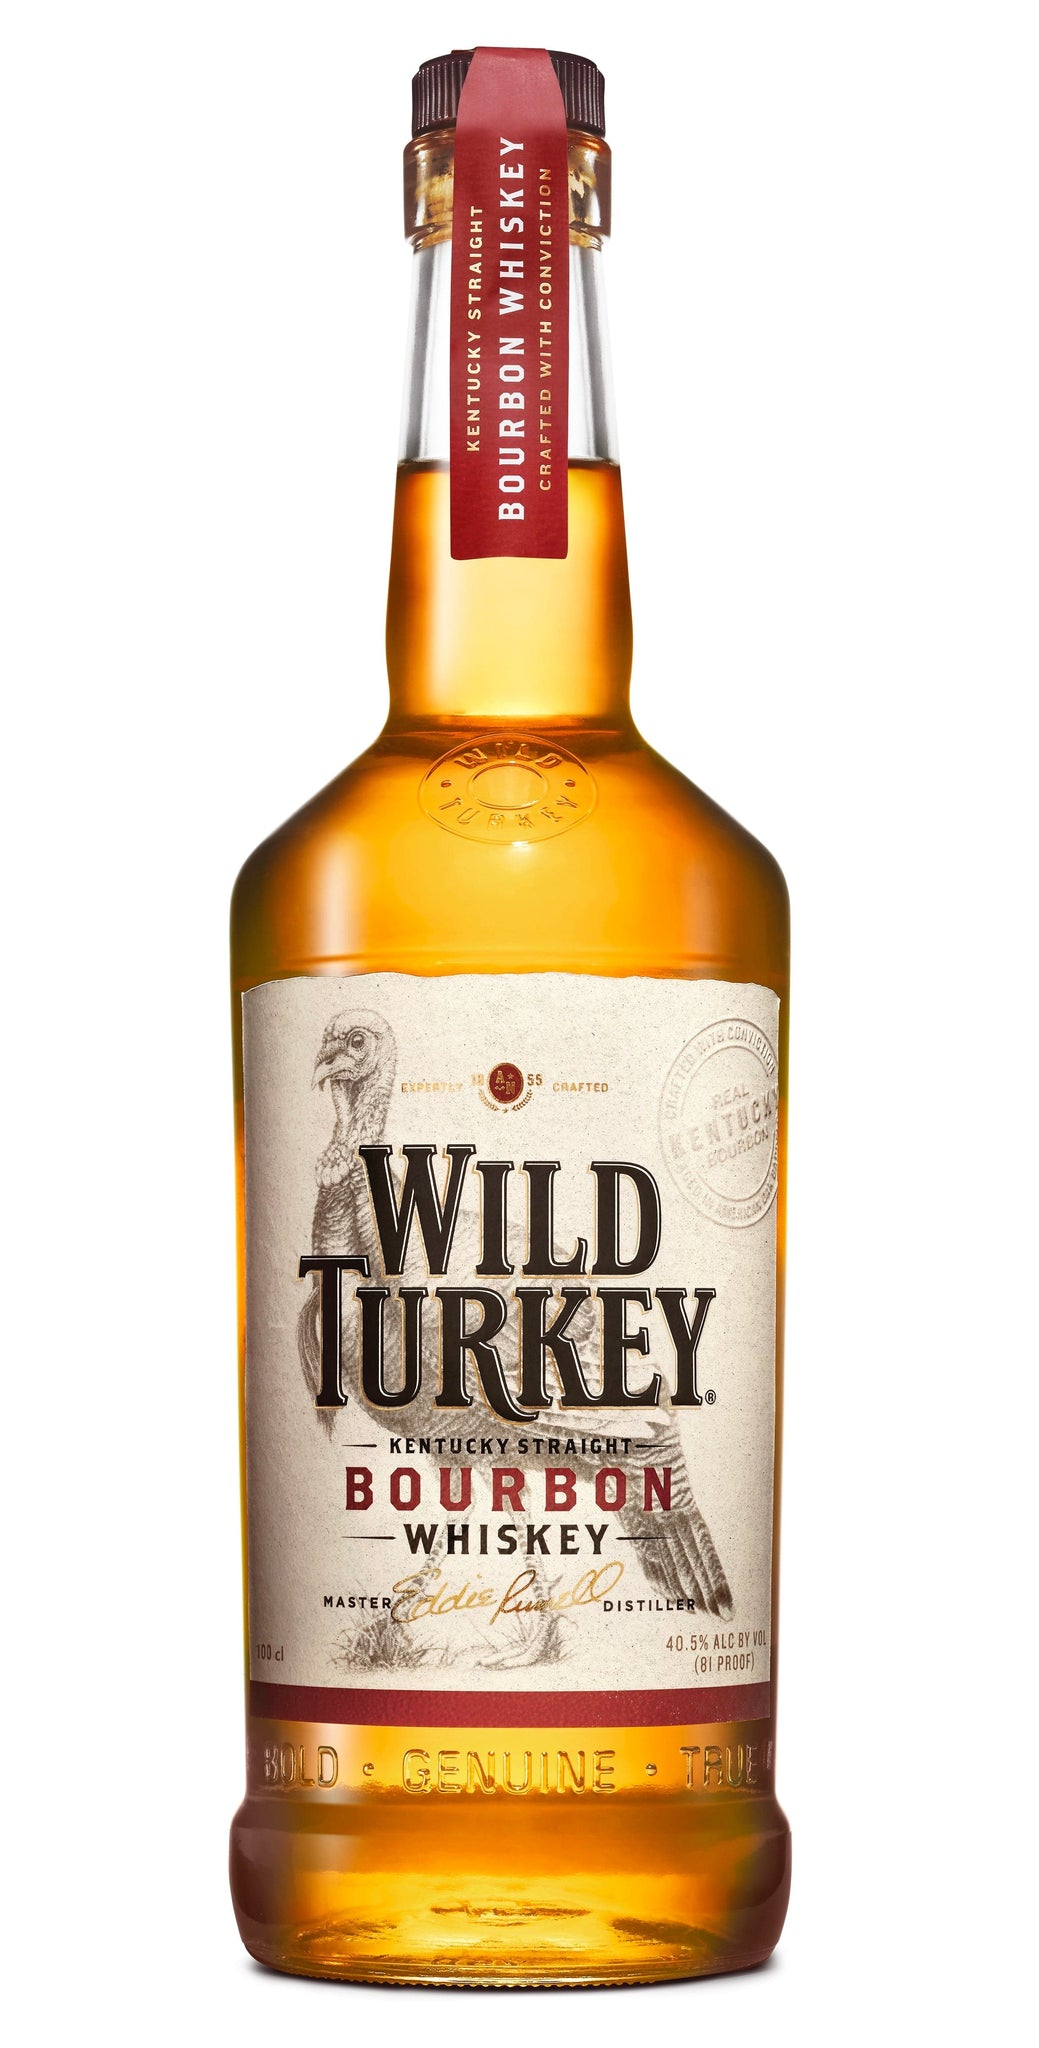 Виски Wild Turkey Bourbon 0,7л 40.5%